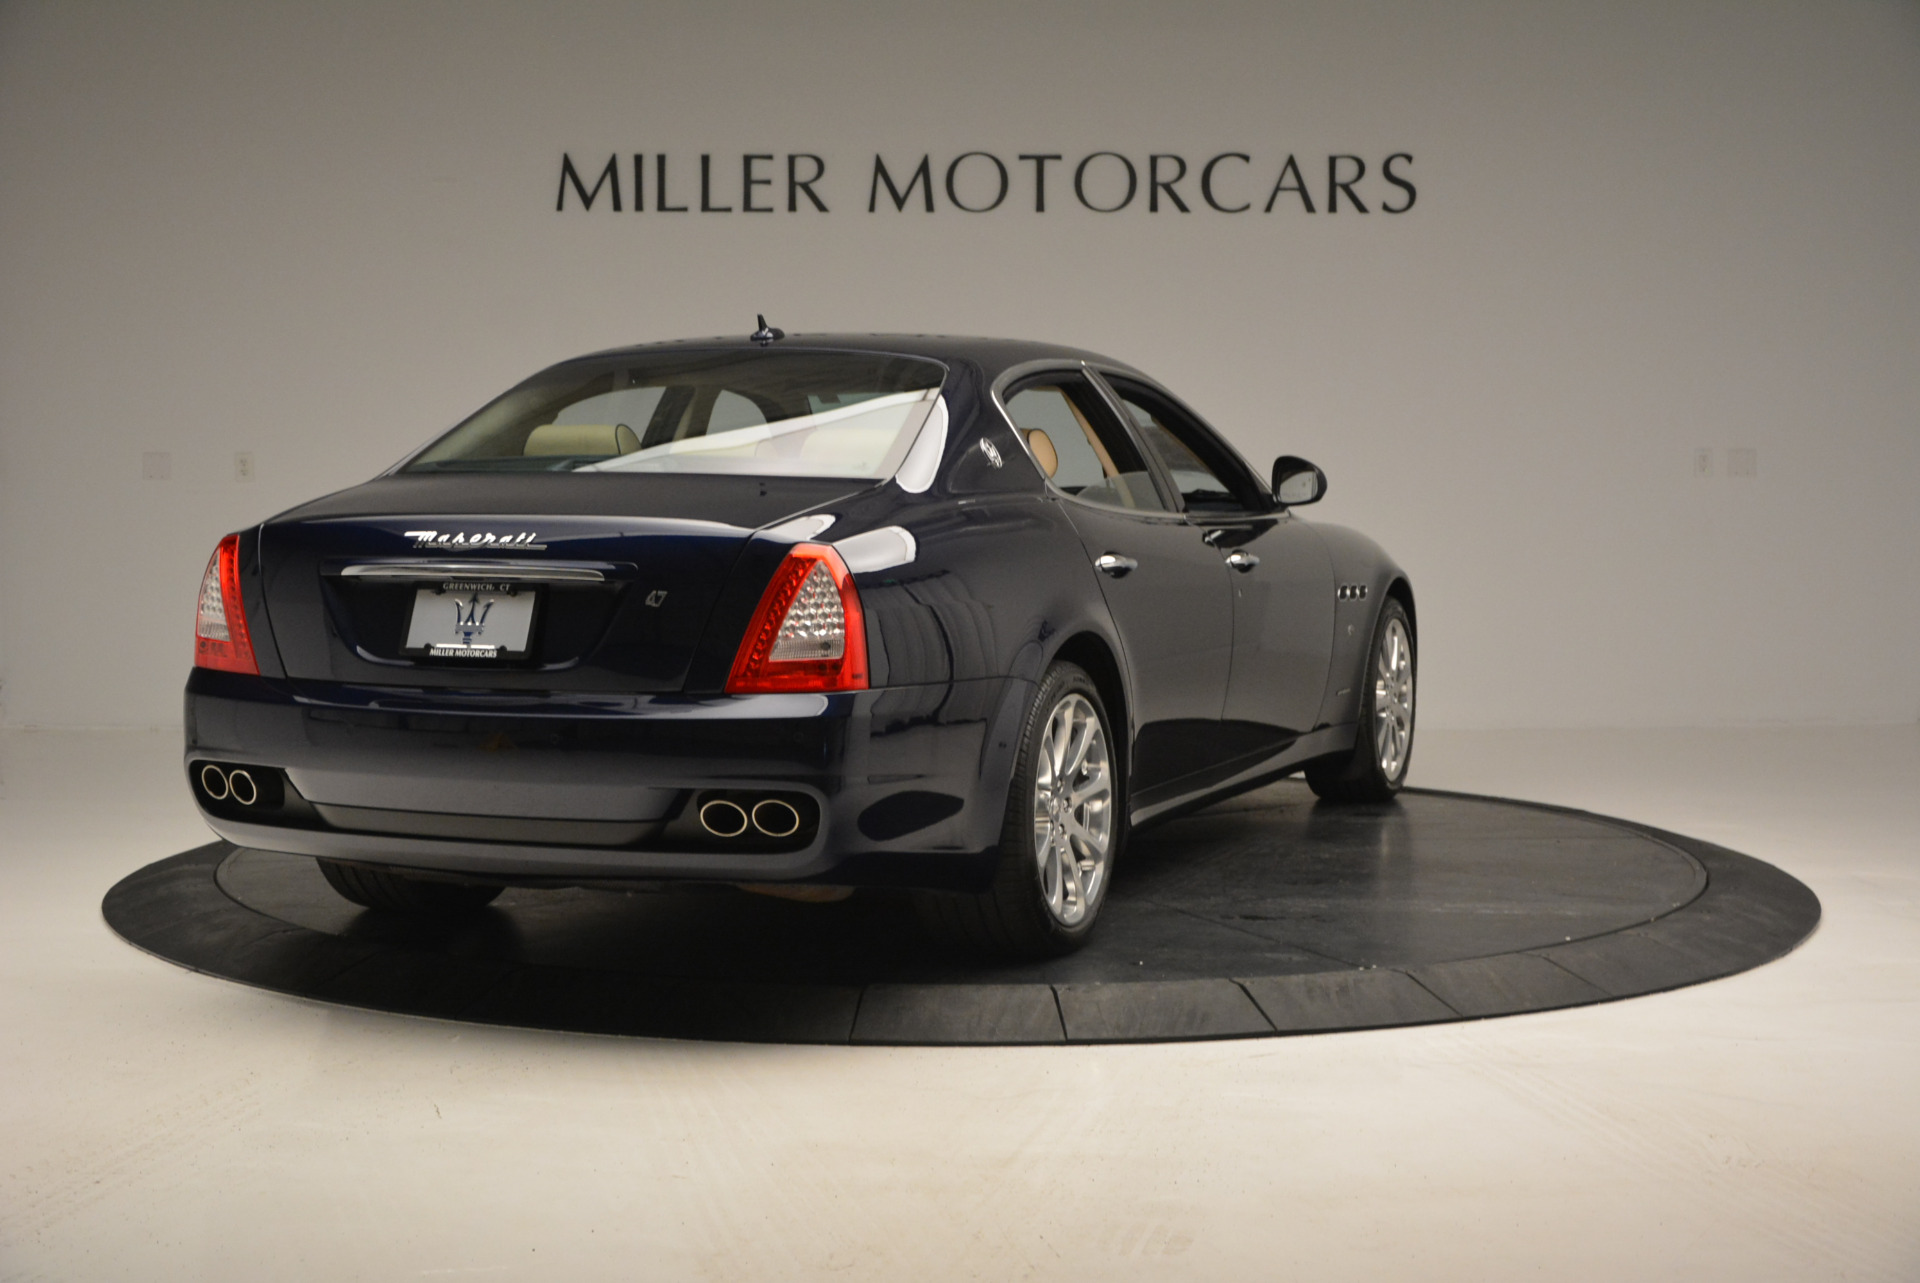 Used 2010 Maserati Quattroporte S For Sale In Greenwich, CT 795_p7